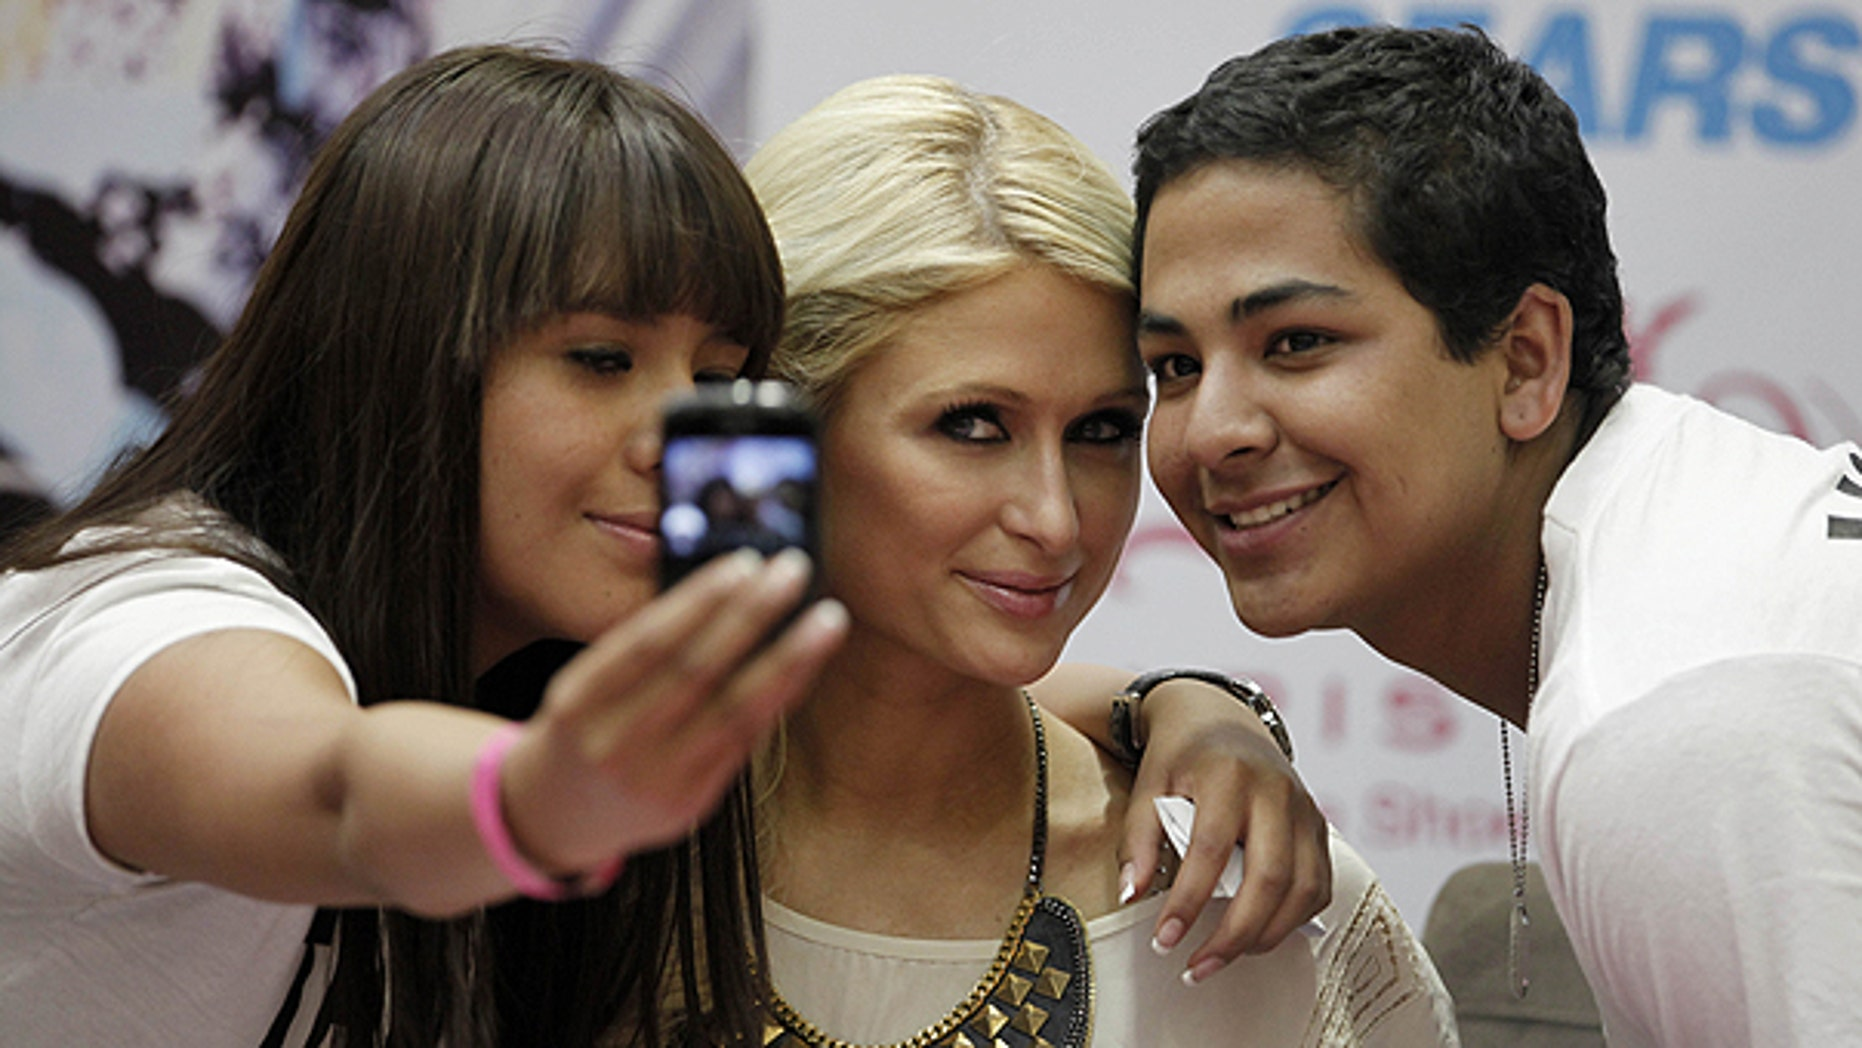 March 29: Paris Hilton poses for a photo with fans during her autograph signing session at a Sears in the Perisur Mall of Mexico City, Mexico.